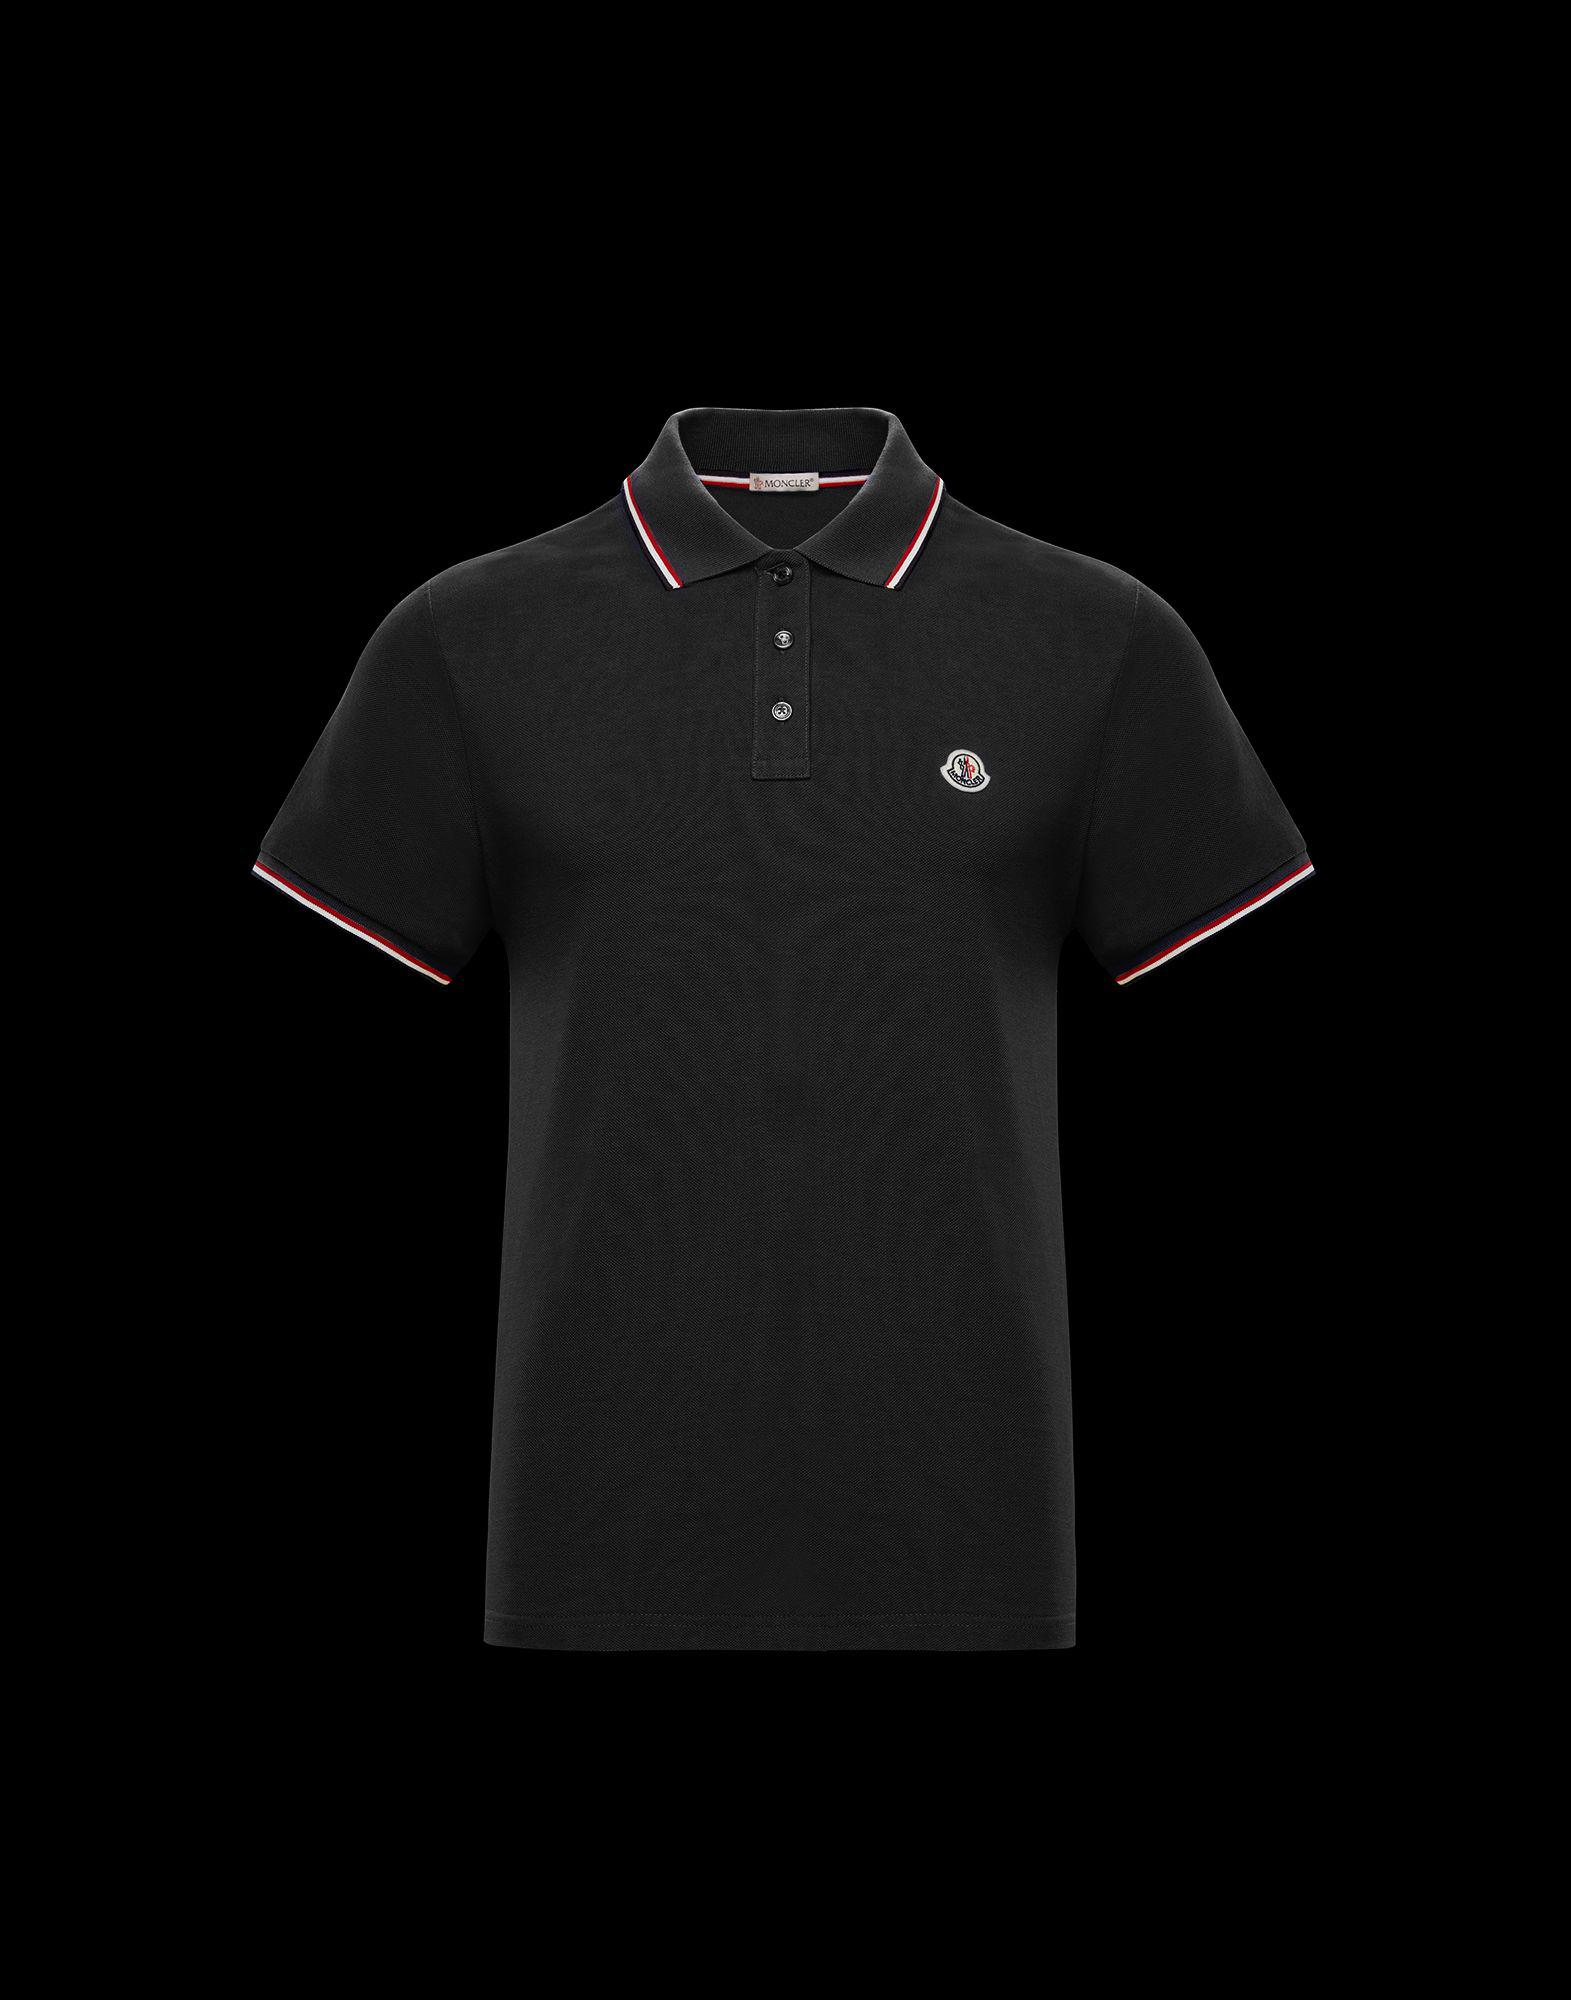 f1d2499f1 Lyst - Moncler Polo Shirt in Black for Men